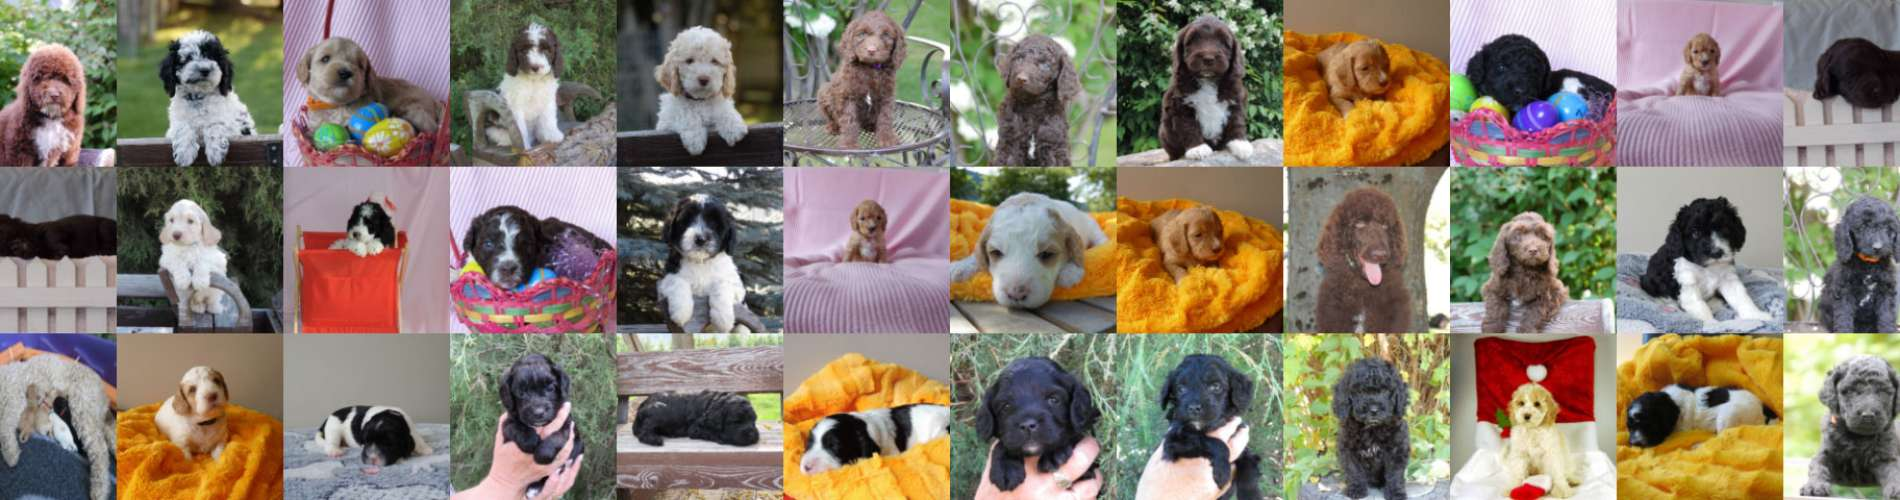 History of Labradoodles - Canadoodle